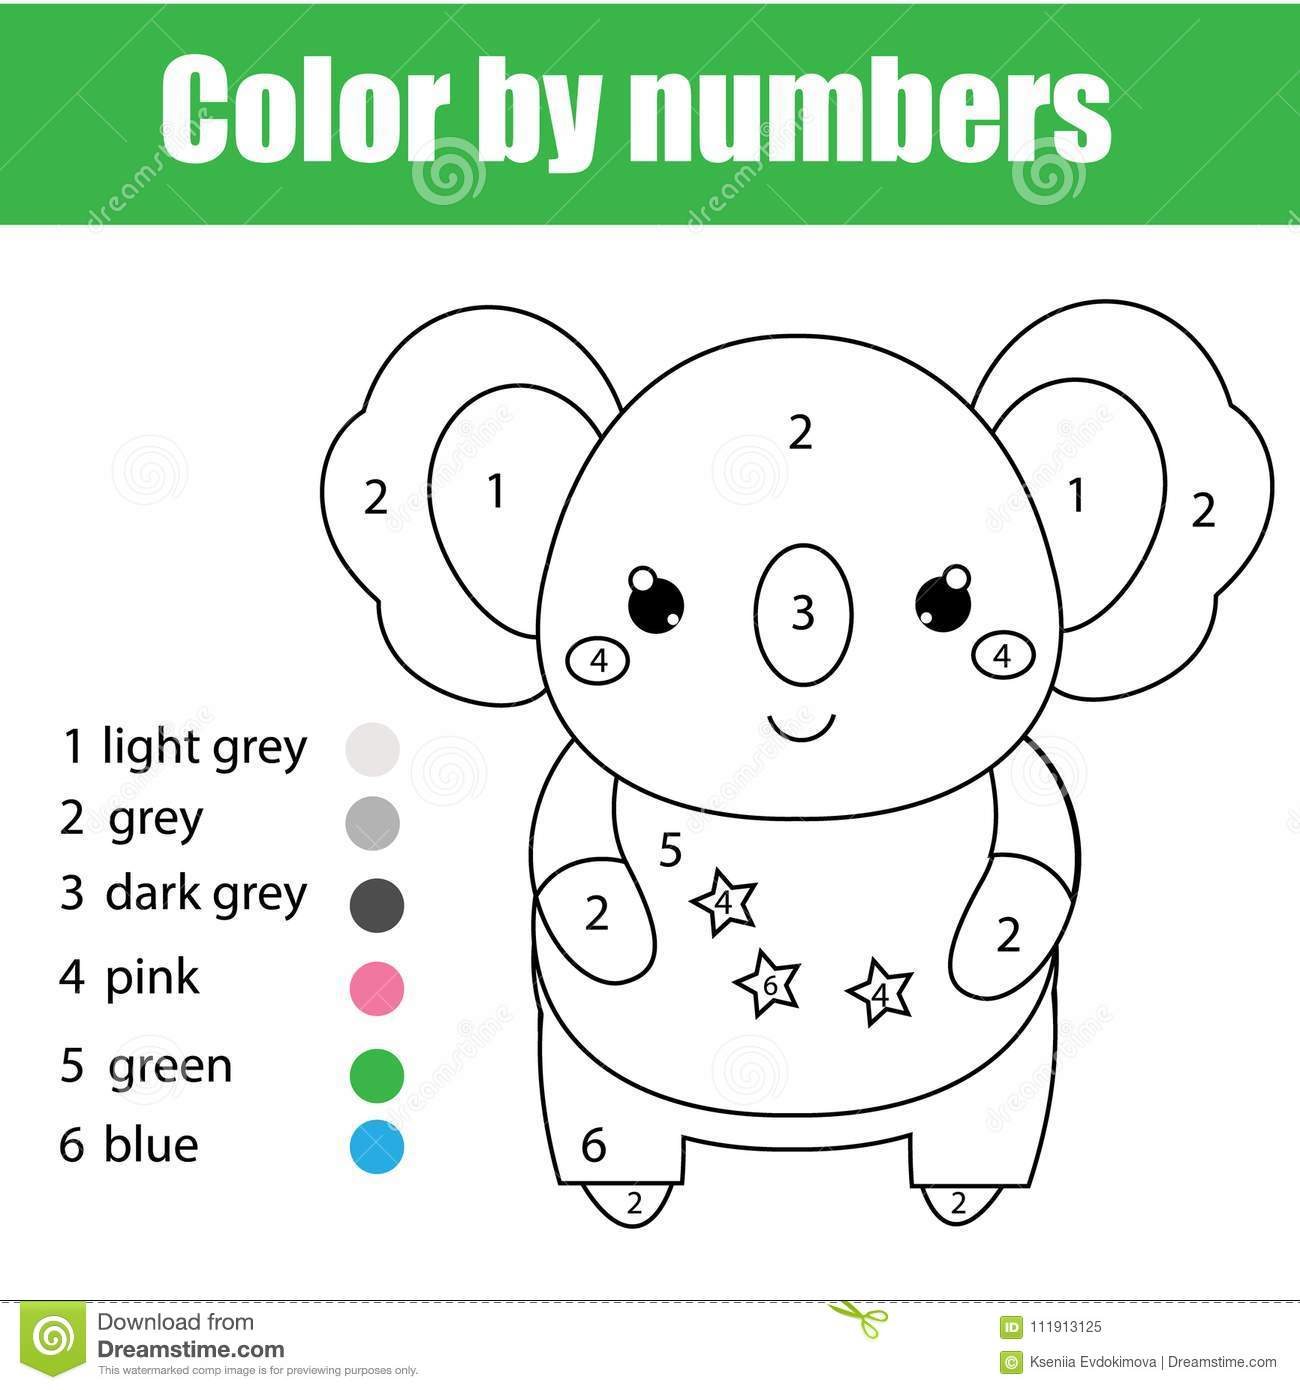 children educational game coloring page cute koala color numbers printable activity worksheet toddlers pre school